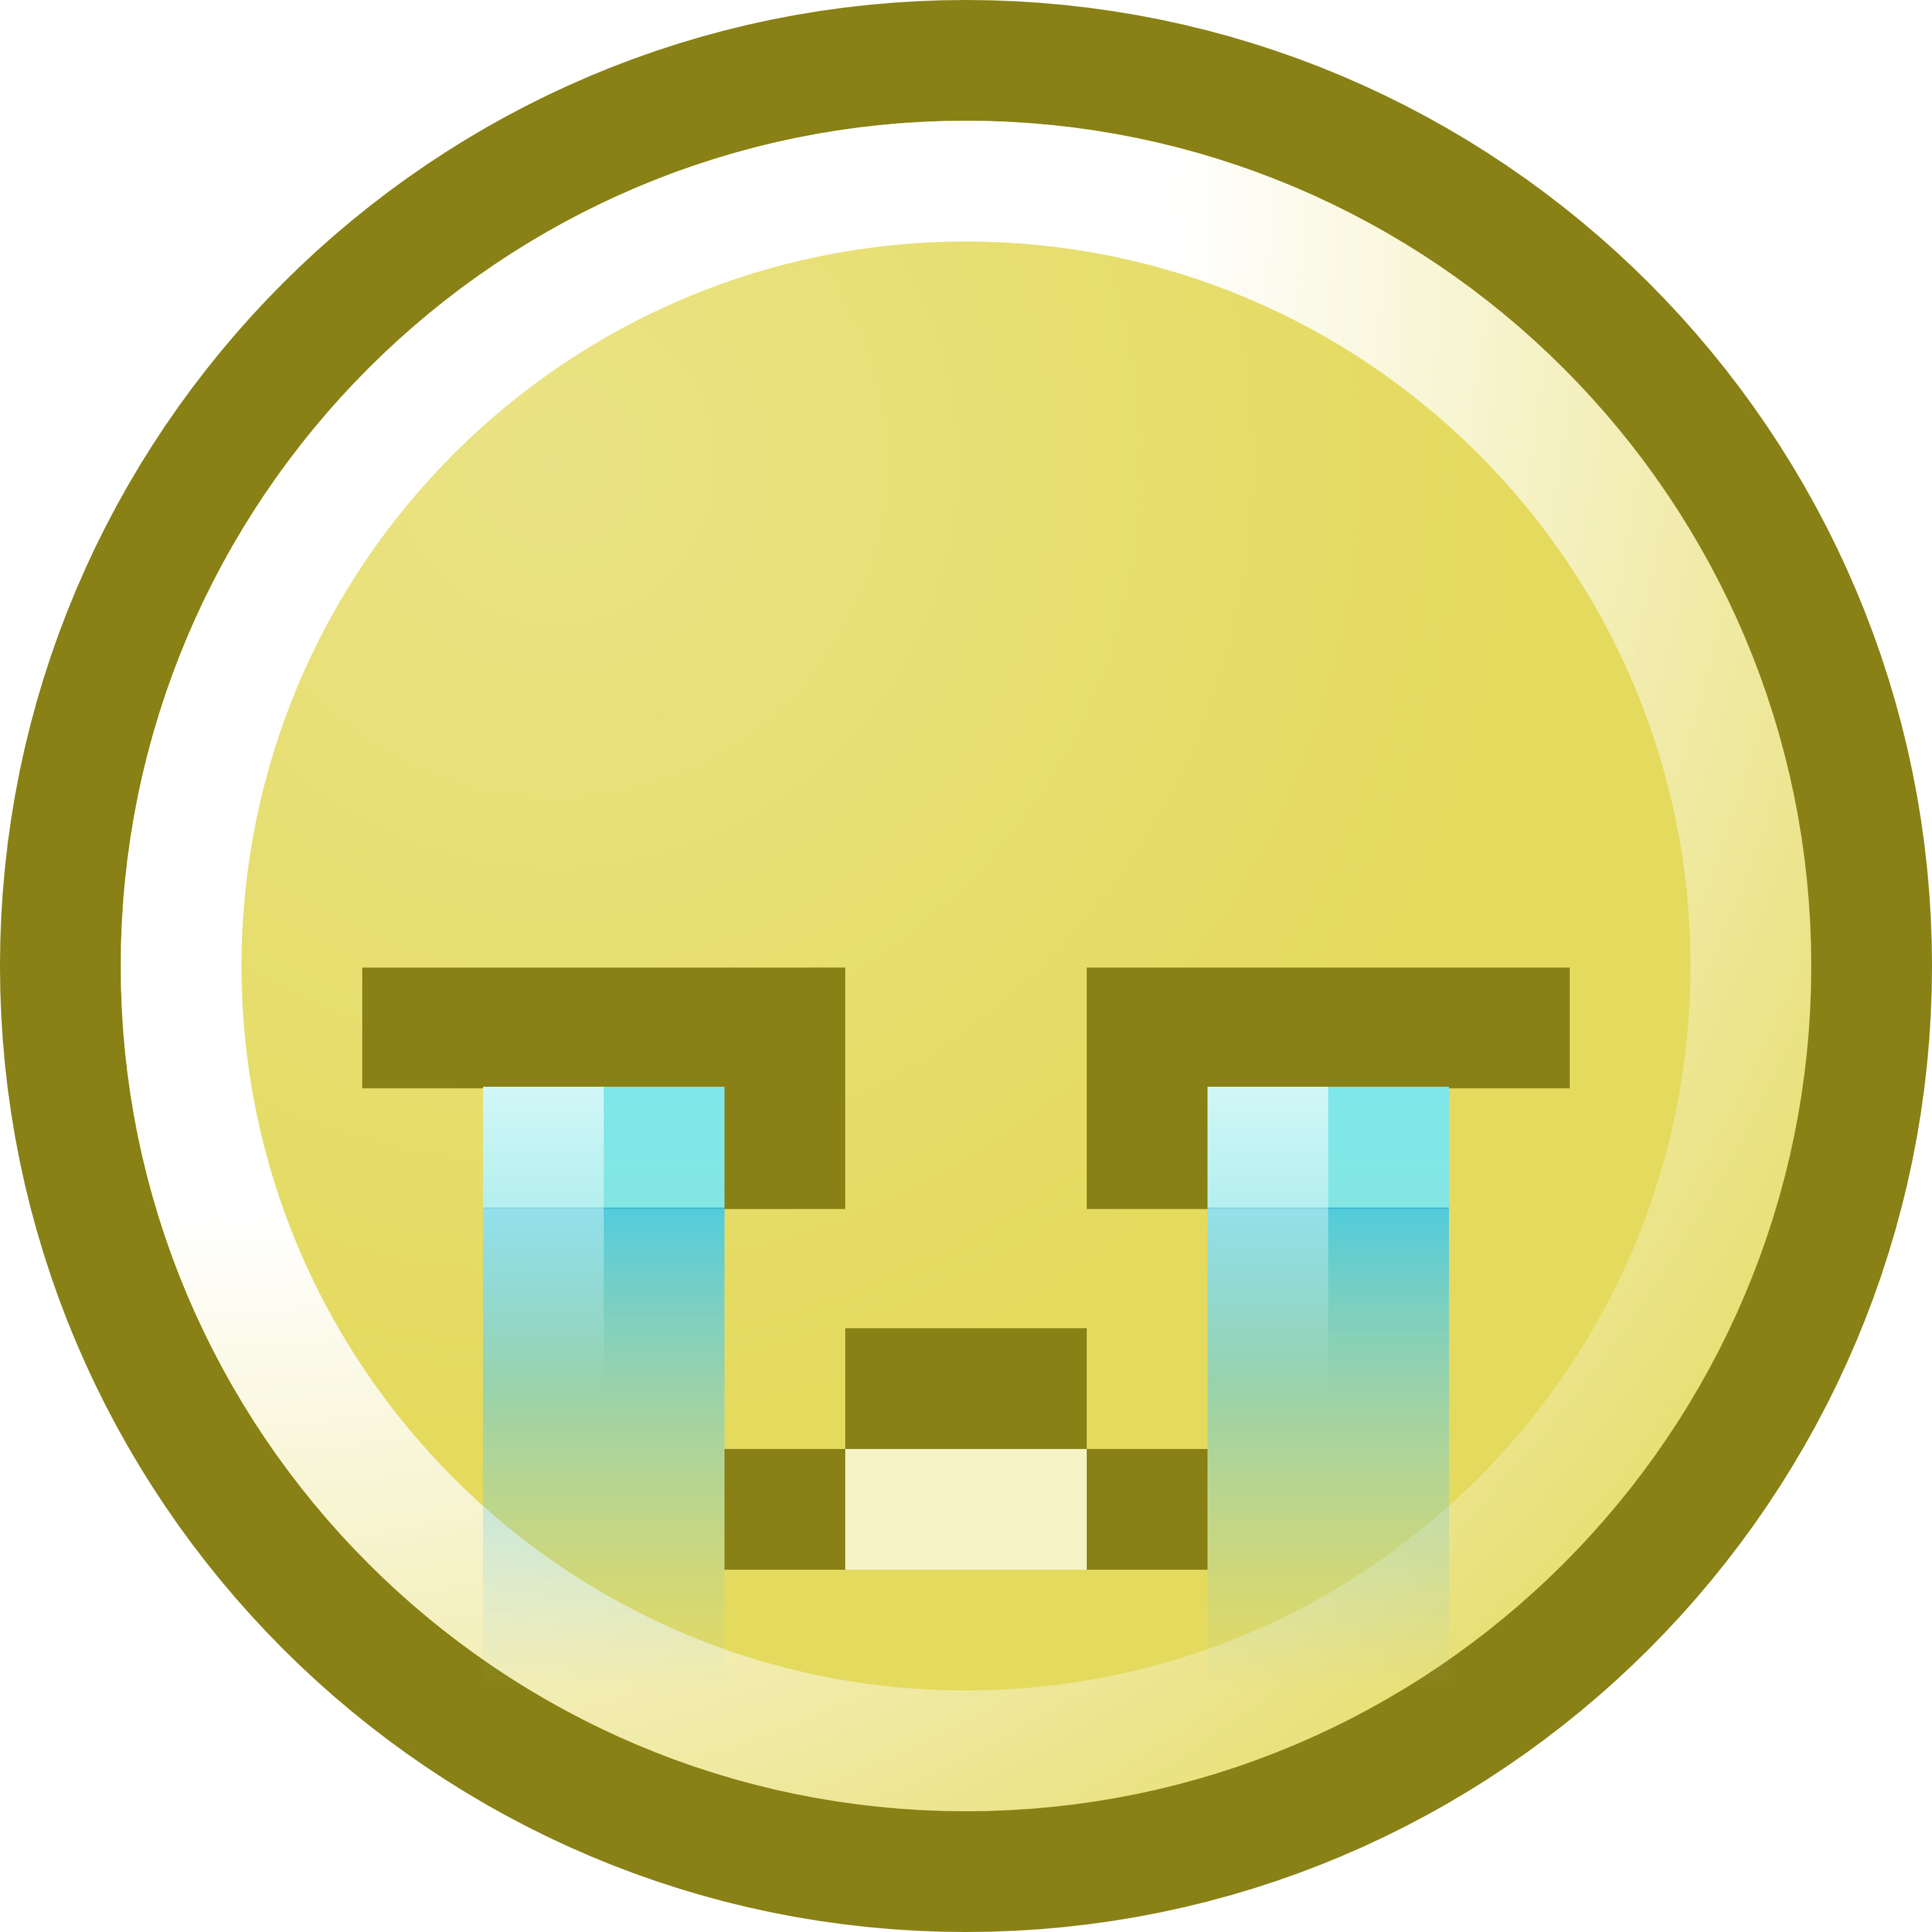 3200x3200 Animated Crying Emoticon Group